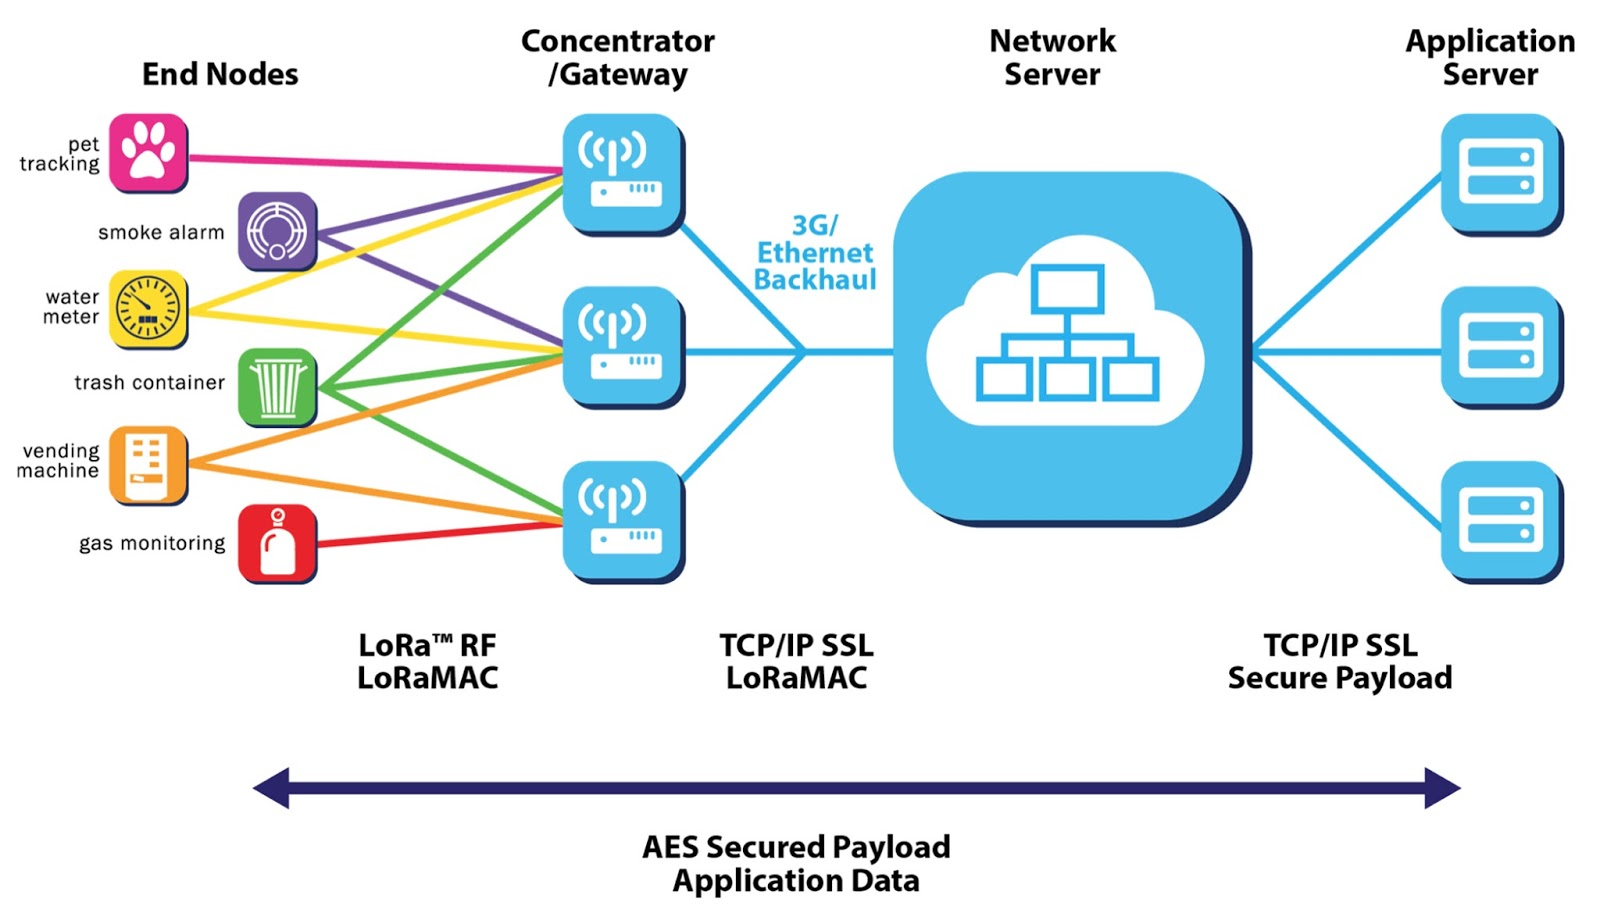 Network Server Where All The Management Functionality Is